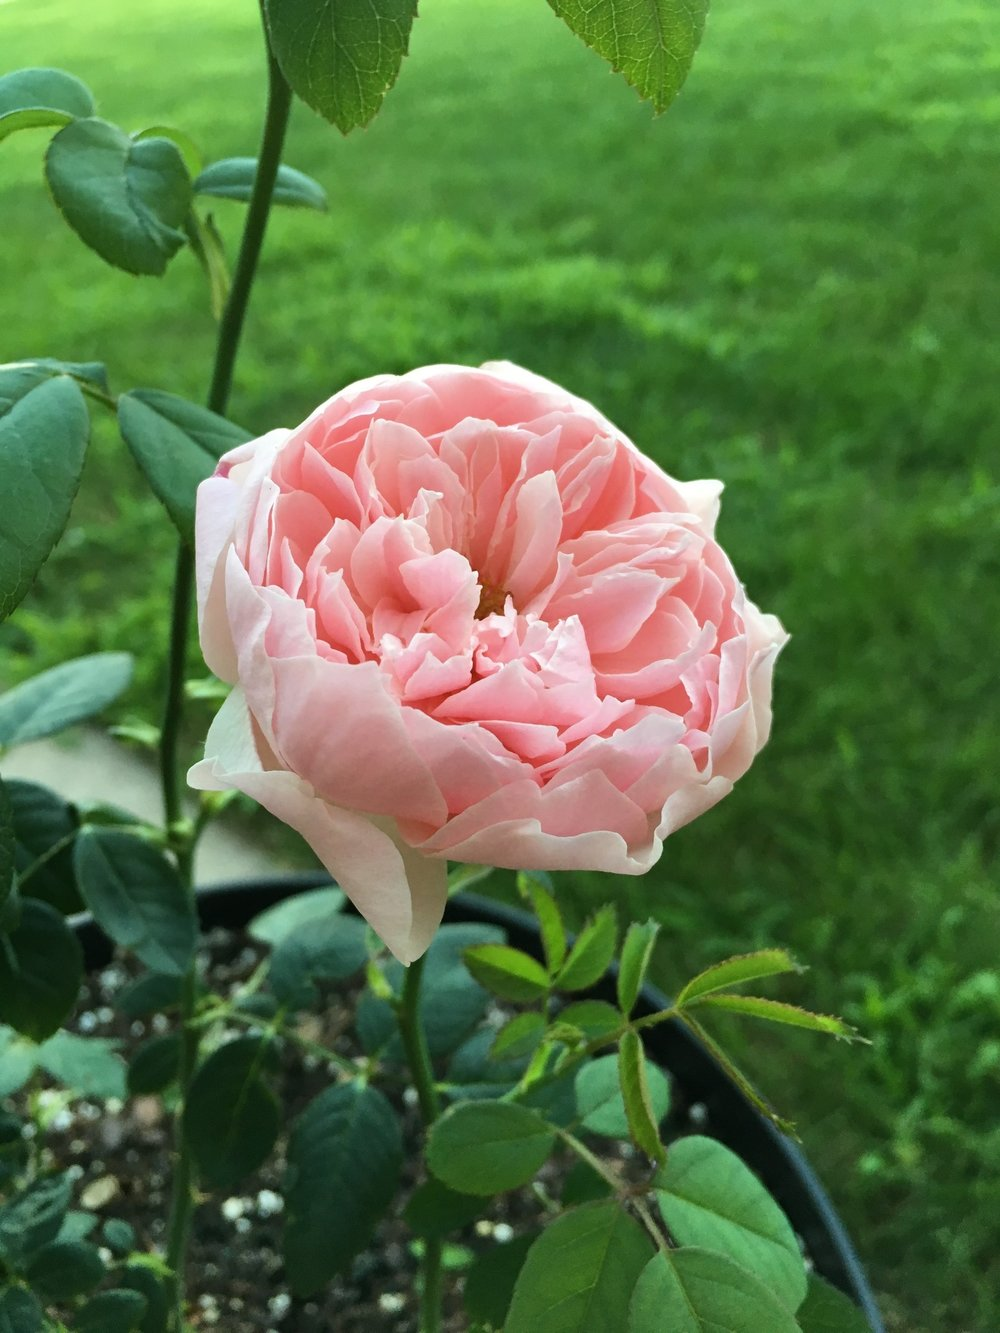 'Alnwick' rose by David Austen